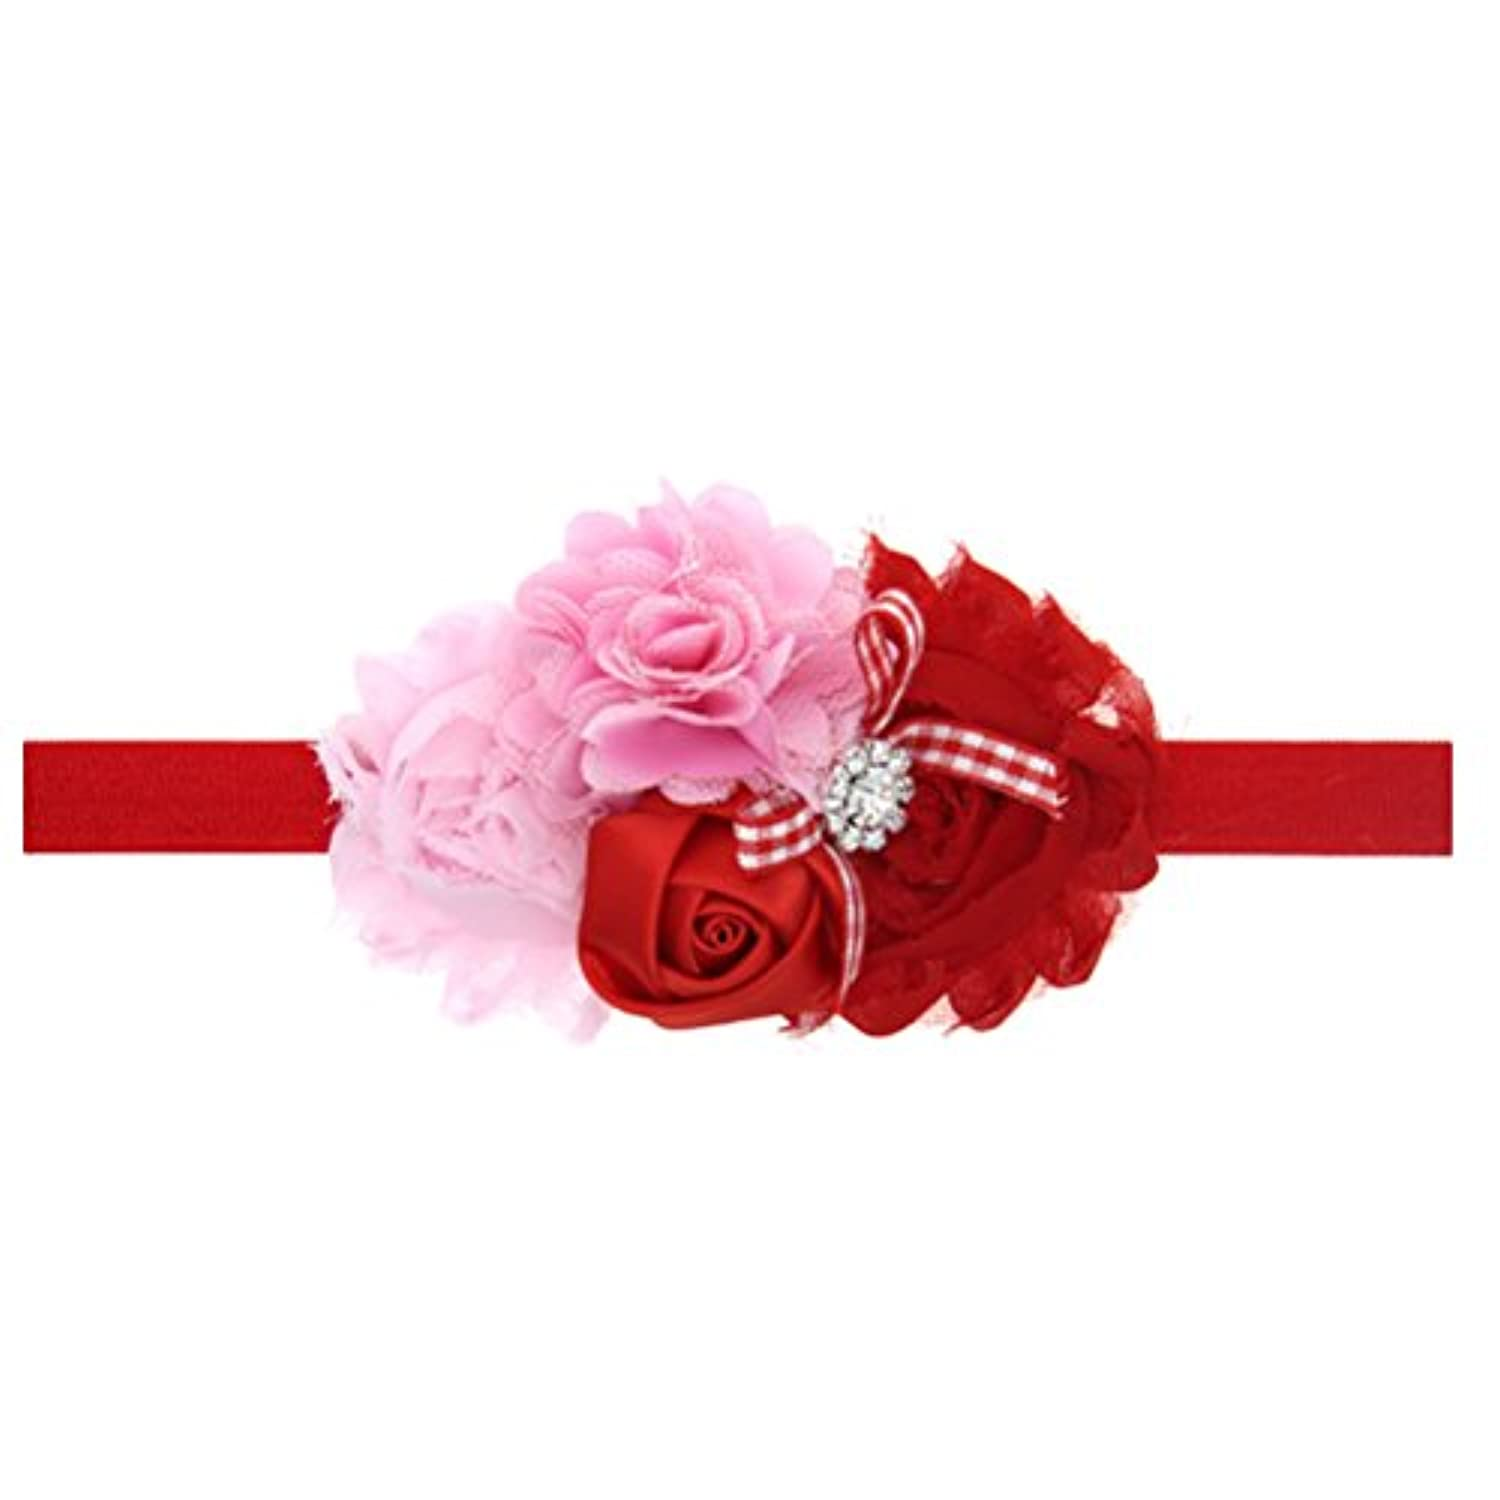 Zhhlaixing ベビー小物 Christmas Baby Girls Kids Embroidery Sequins Bowknot Headband Hairband Flower Hair Accessories